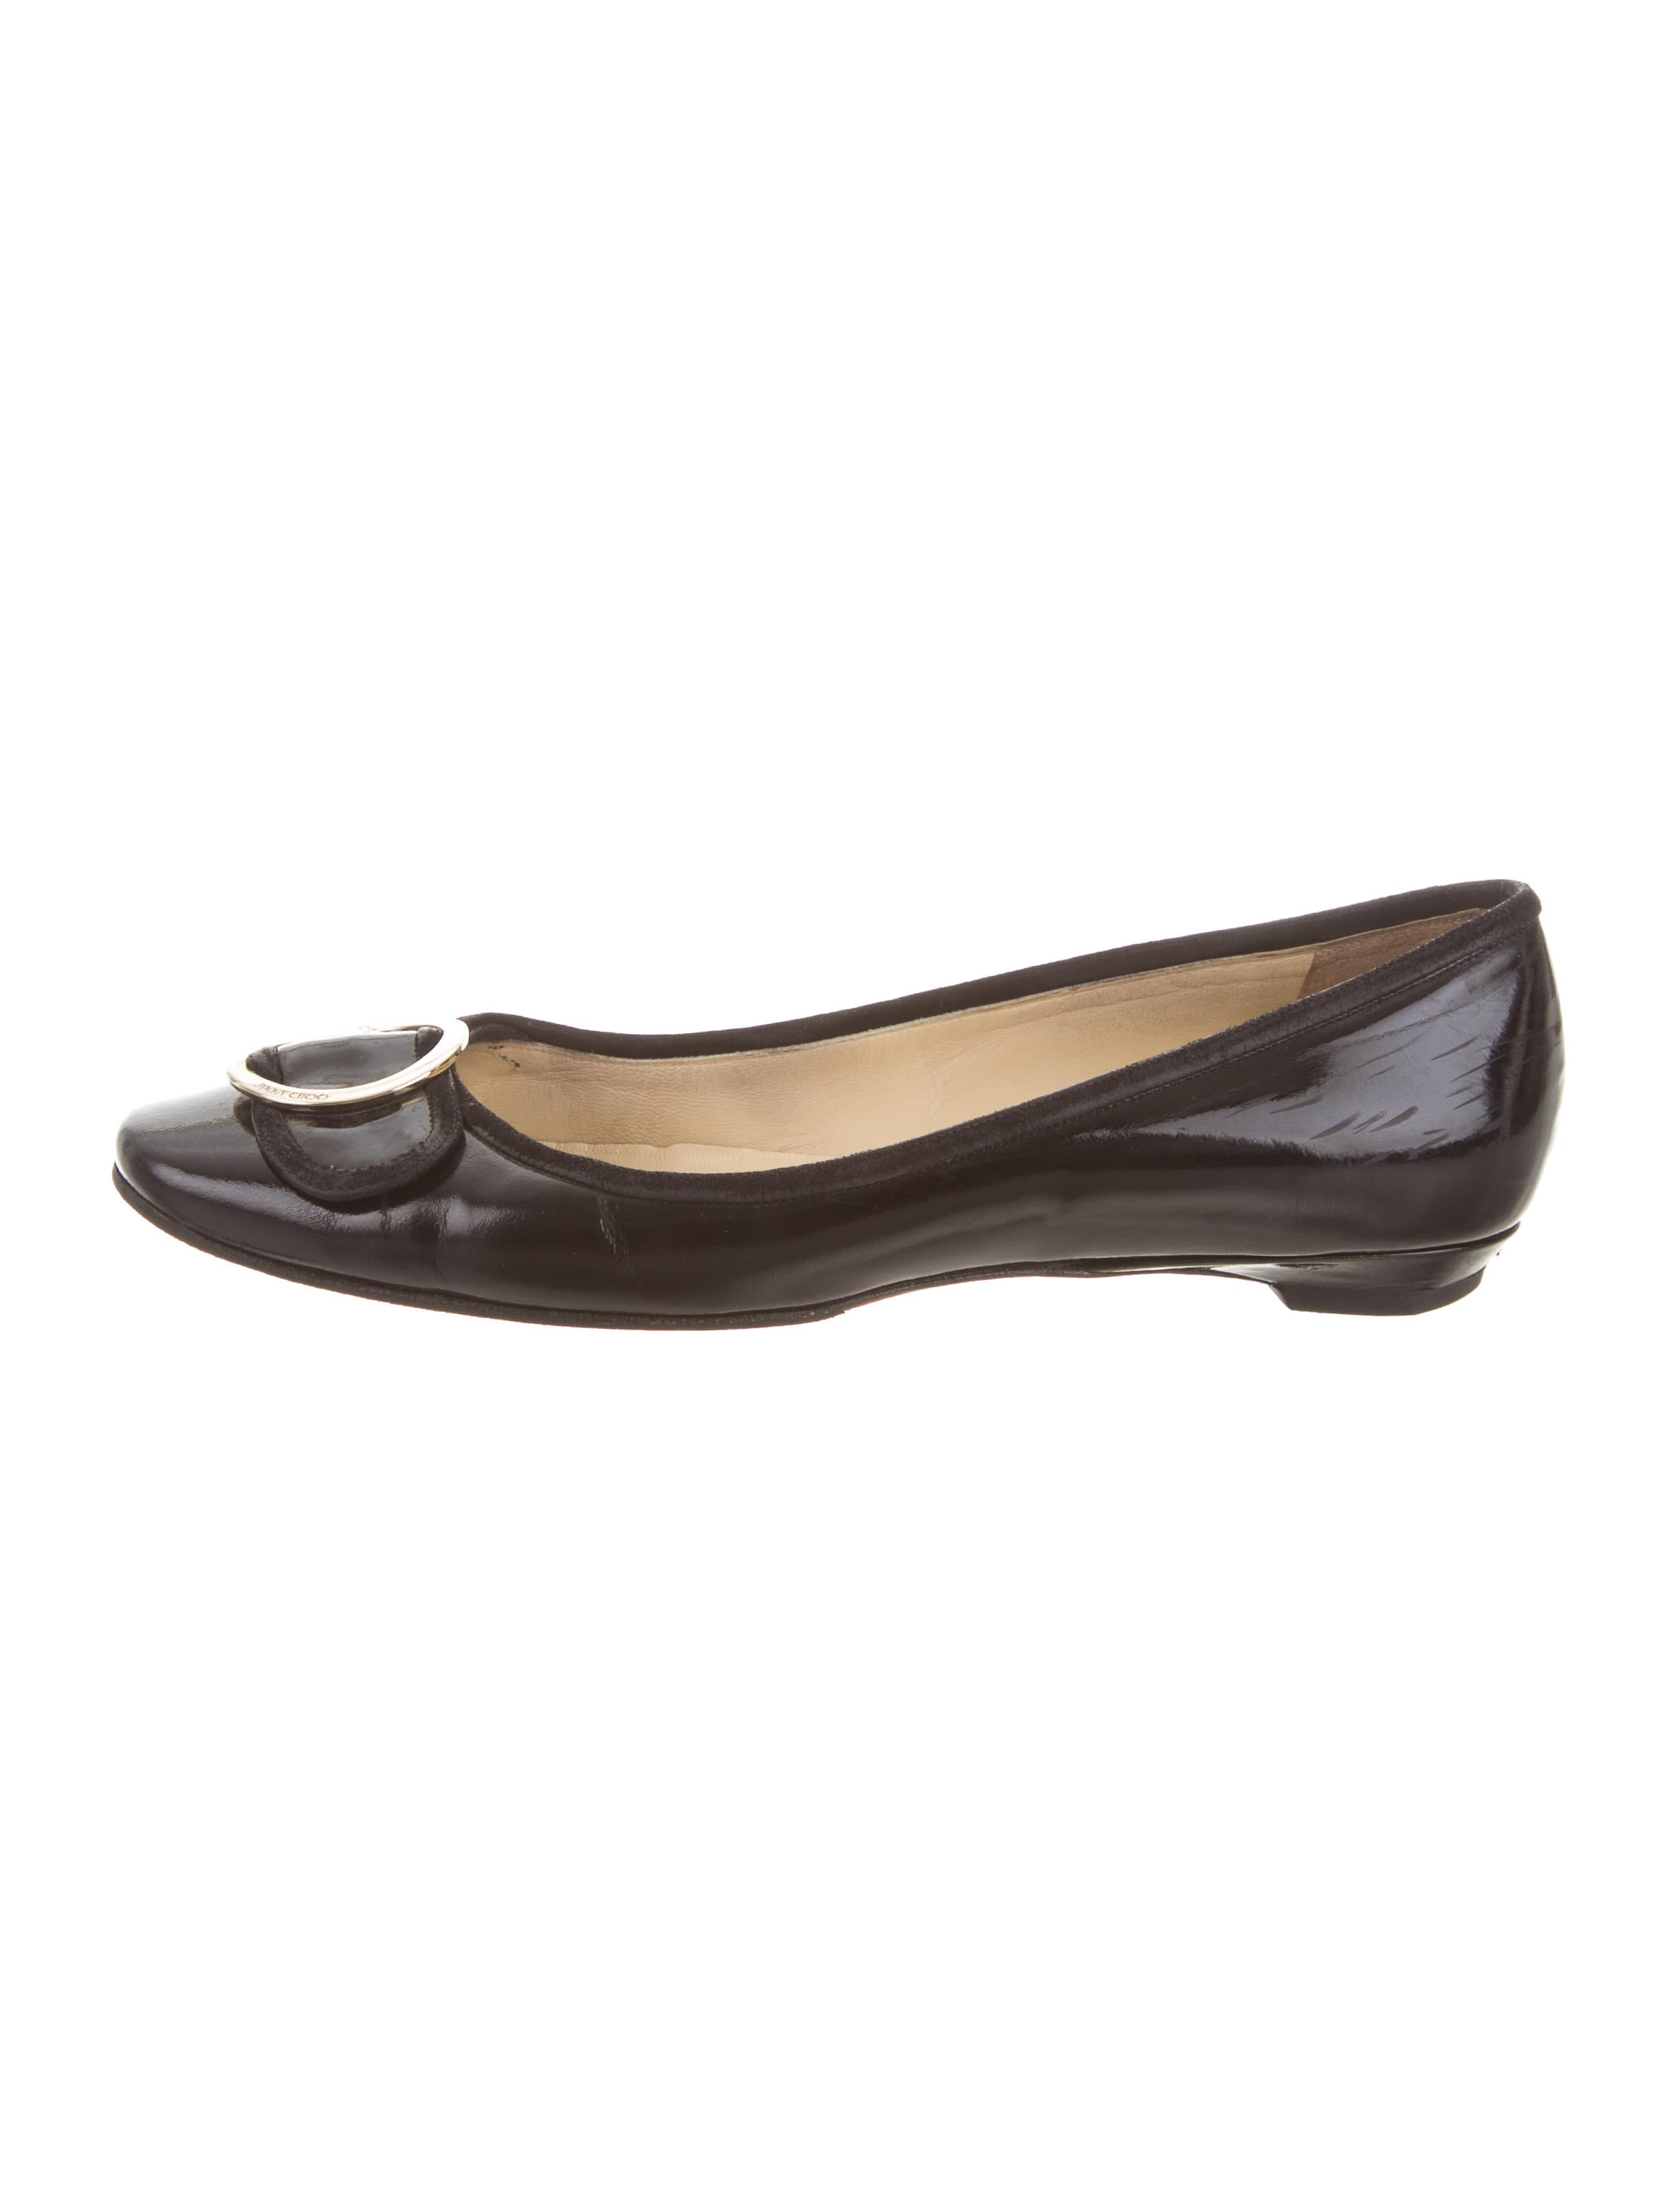 lowest price Jimmy Choo Round-Toe Buckle Flats sale finishline 6xqrY